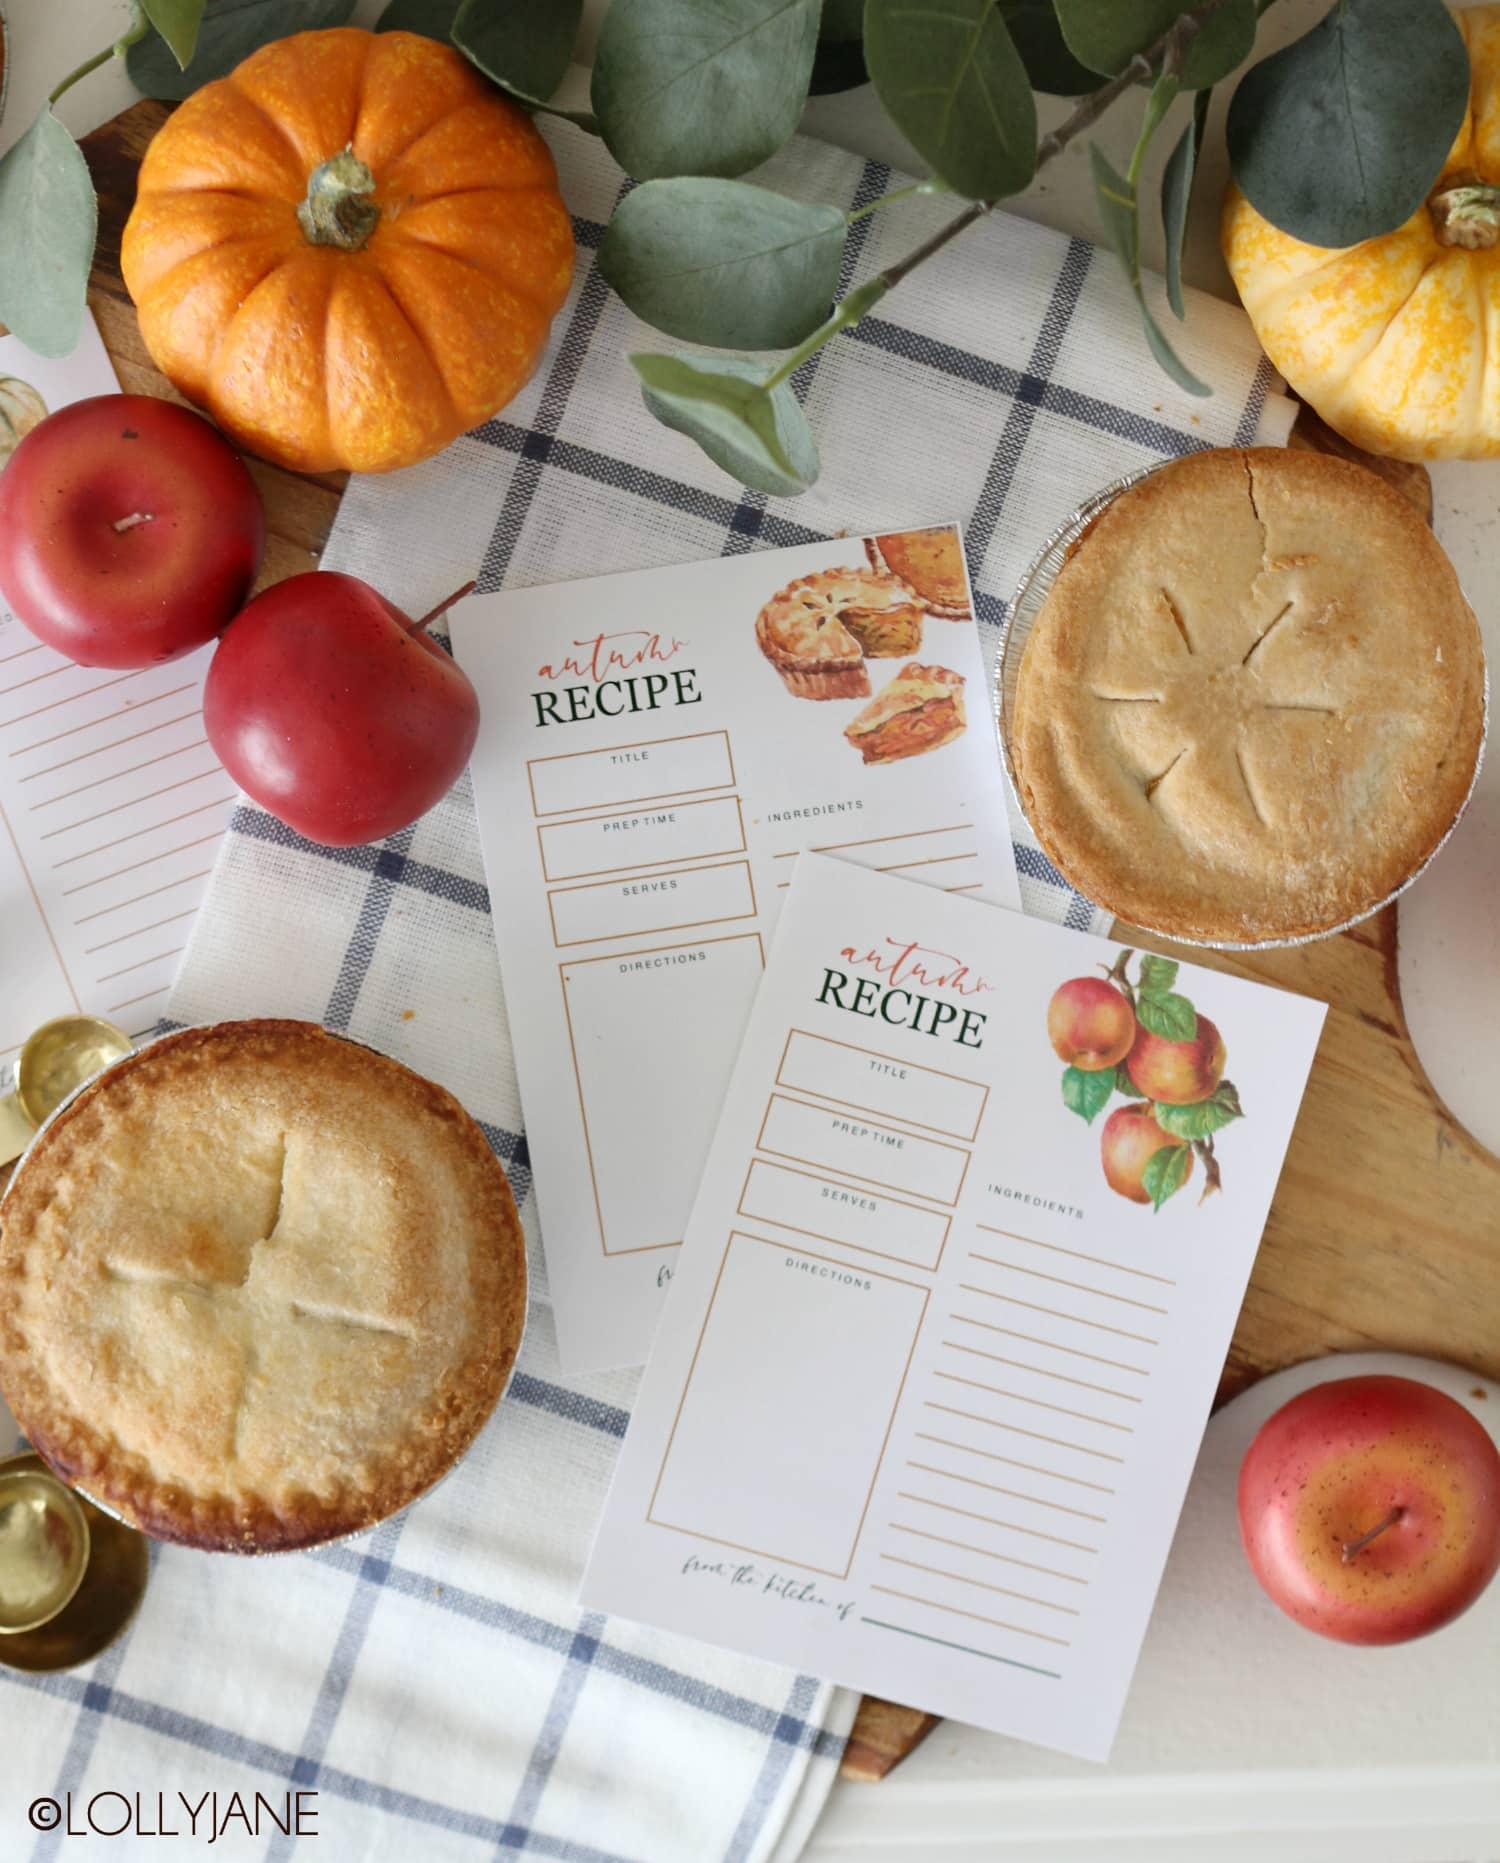 Gorgeous FREE printable fall recipe cards, perfect to print and pass along with your favorite autumn foods! #freeprintable #printable #recipecard #printablerecipecards